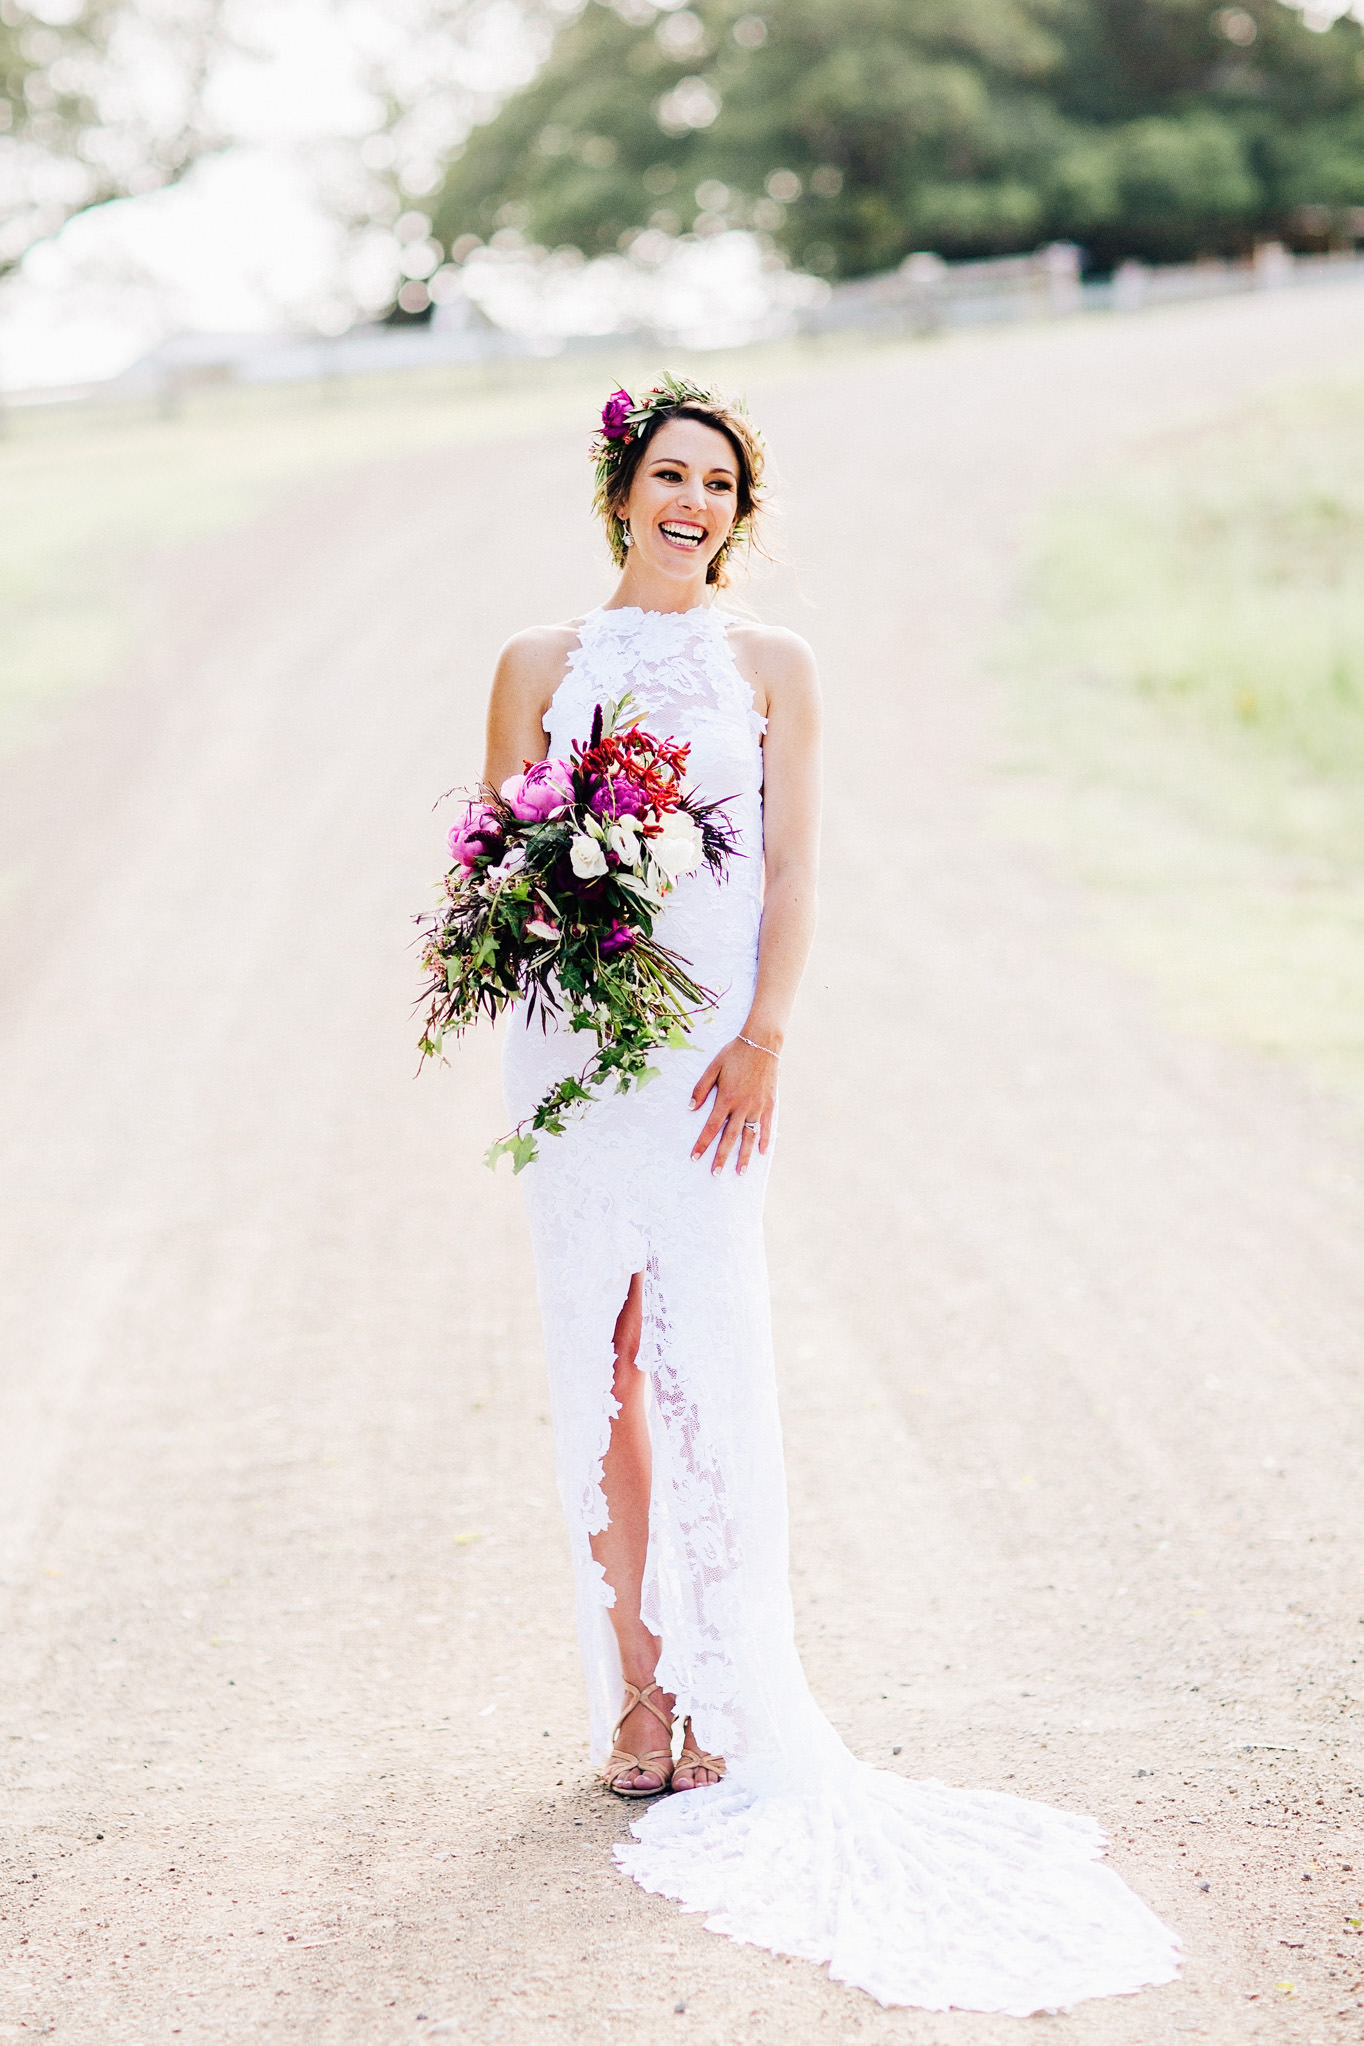 TocalHomestead_WeddingPhotography_LaurenAnnePhotography-1088.jpg